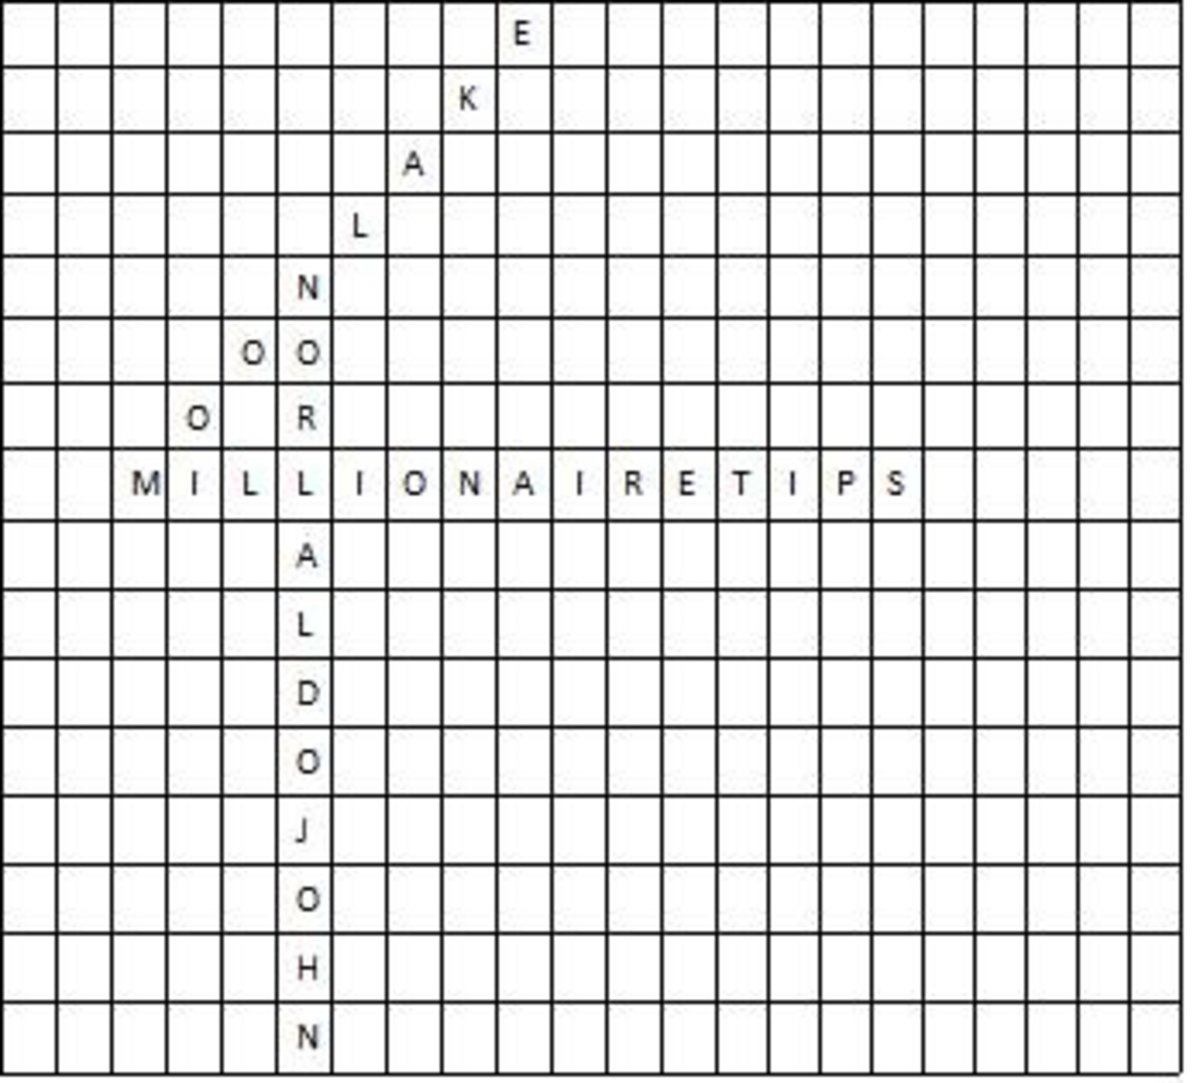 A word search puzzle, also known as a seek and find, in its creation.